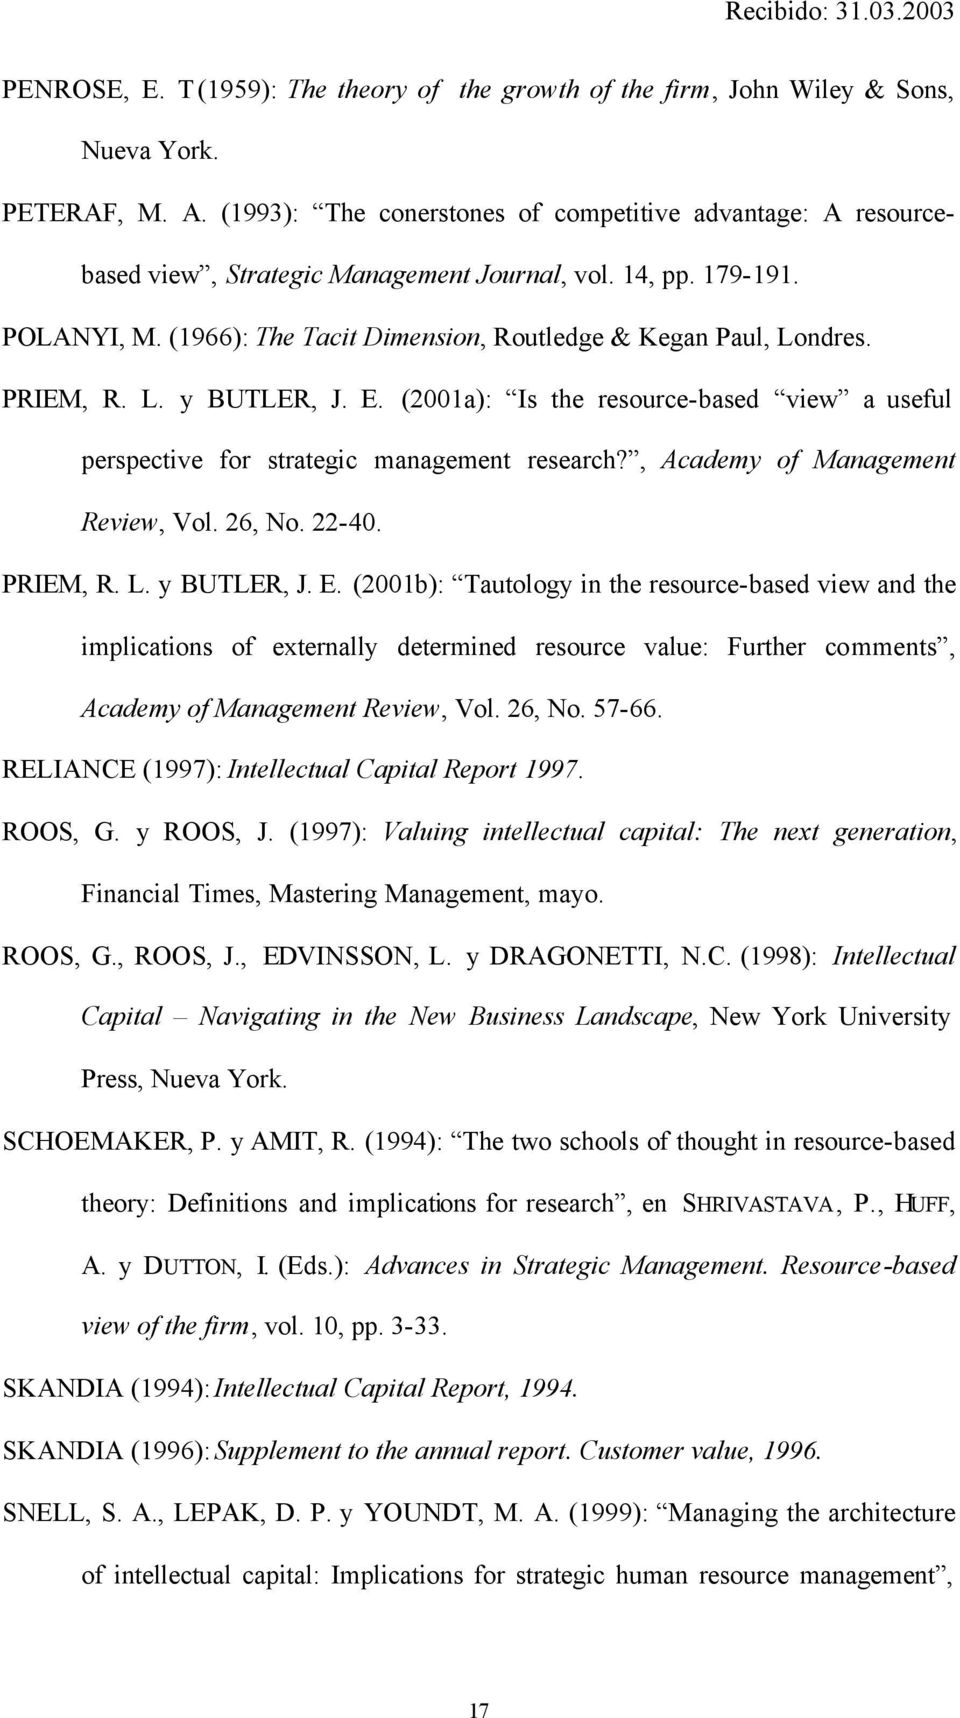 PRIEM, R. L. y BUTLER, J. E. (2001a): Is the resource-based view a useful perspective for strategic management research?, Academy of Management Review, Vol. 26, No. 22-40. PRIEM, R. L. y BUTLER, J. E. (2001b): Tautology in the resource-based view and the implications of externally determined resource value: Further comments, Academy of Management Review, Vol.